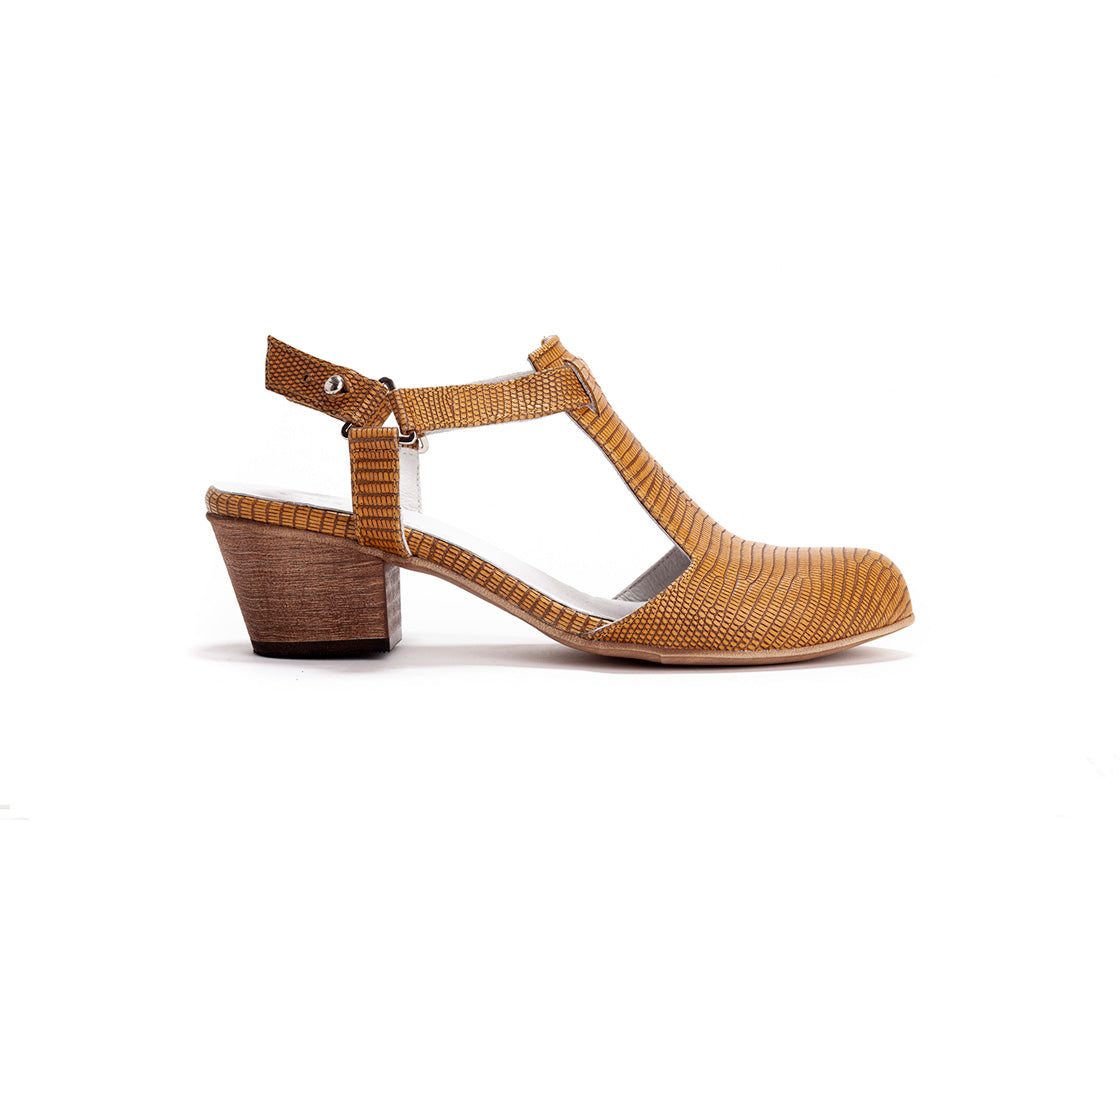 Audrey - Closed Toe Sandals